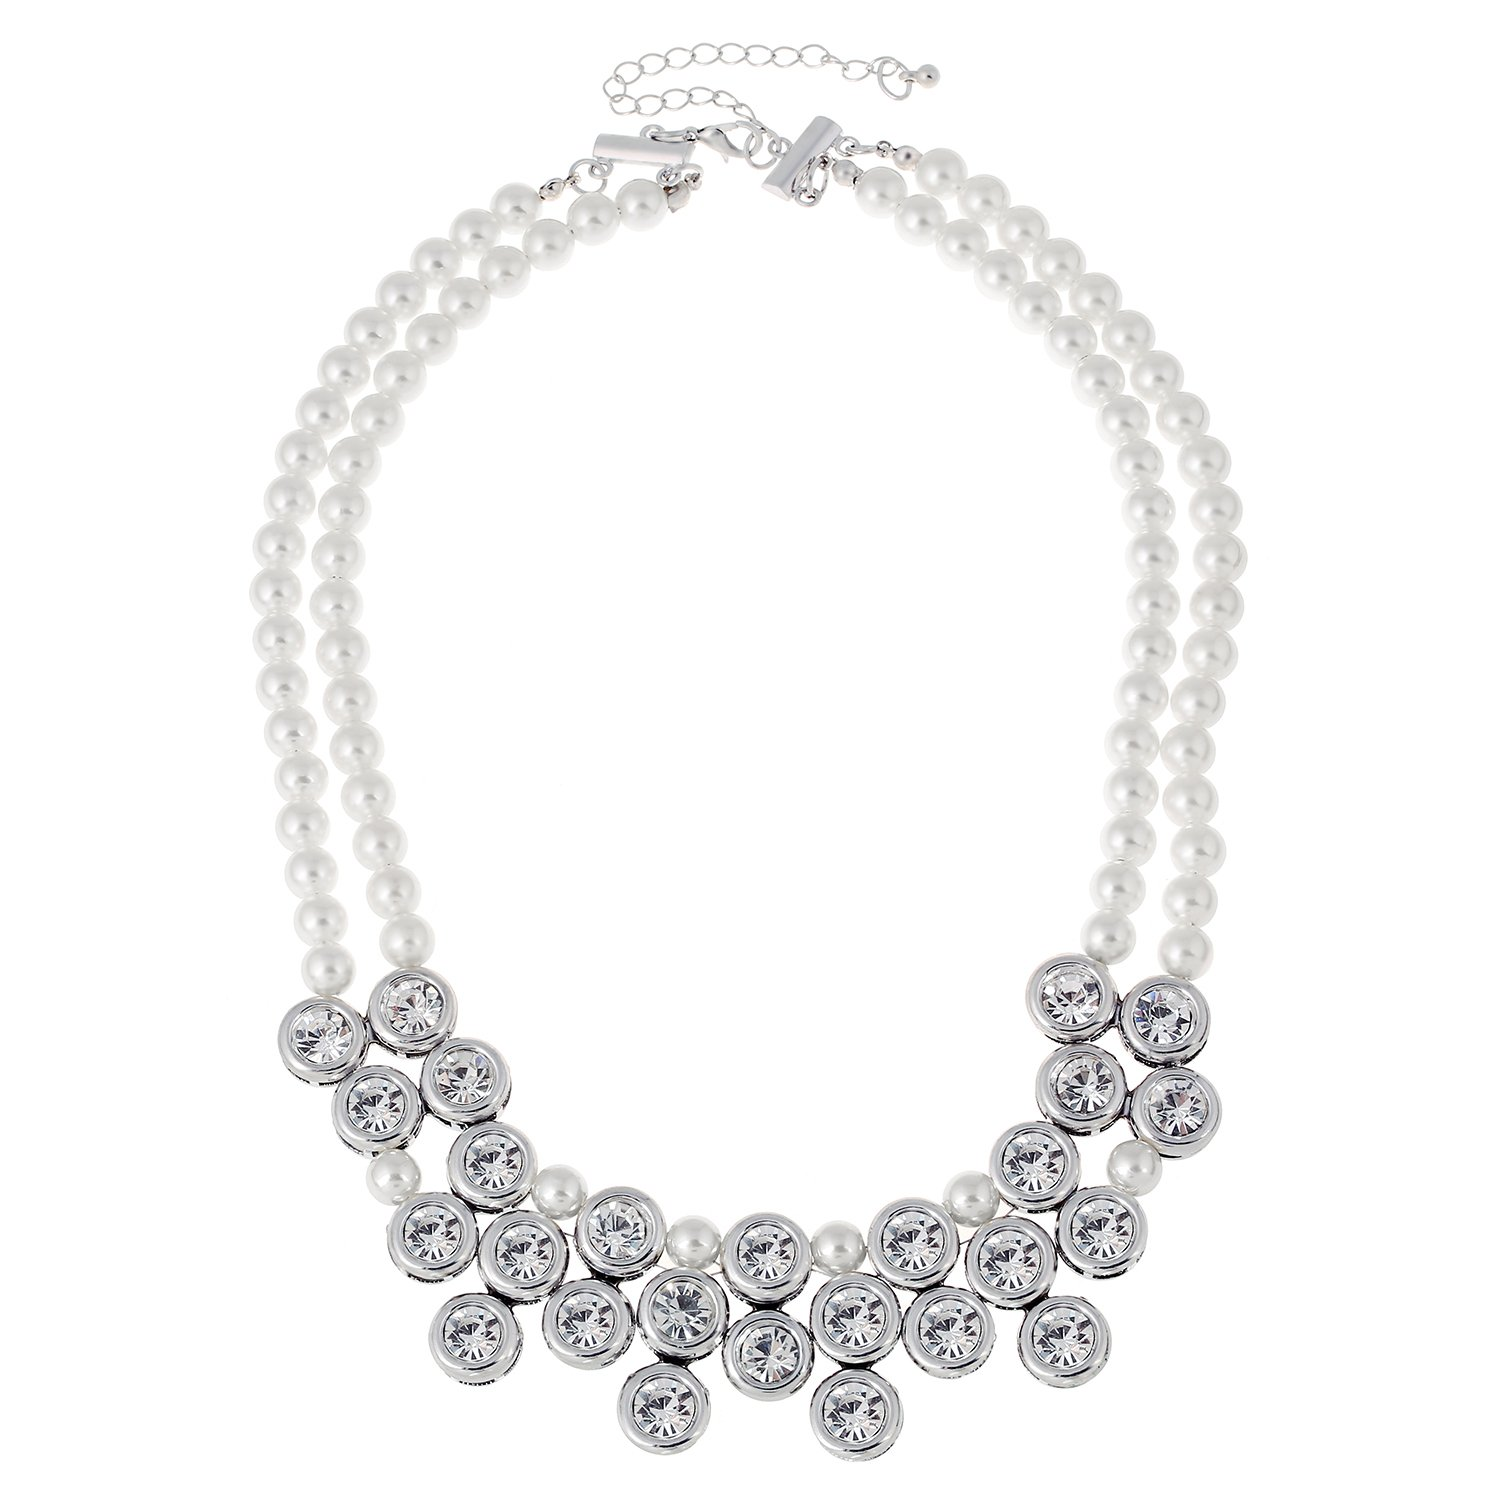 D EXCEED Statement Party Jewelry Necklace Crystal Pearl Coller Choker for Women and Ladies